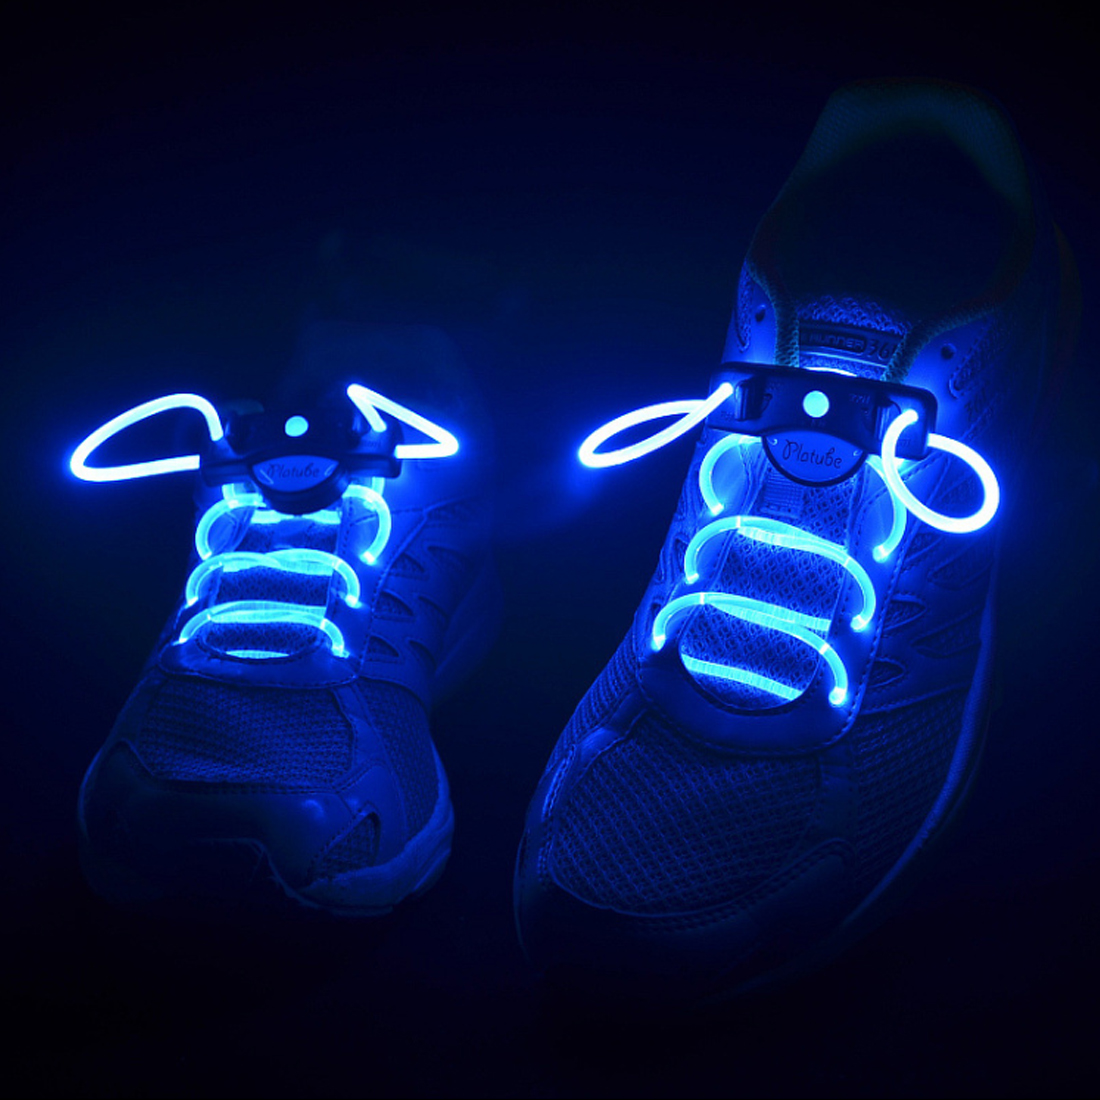 Hot! 2pcs! Fashion LED Shoelaces Shoe Laces Flashing Light Up Glow Stick Strap Neon Shoe Strings Luminous Laces Disco Party